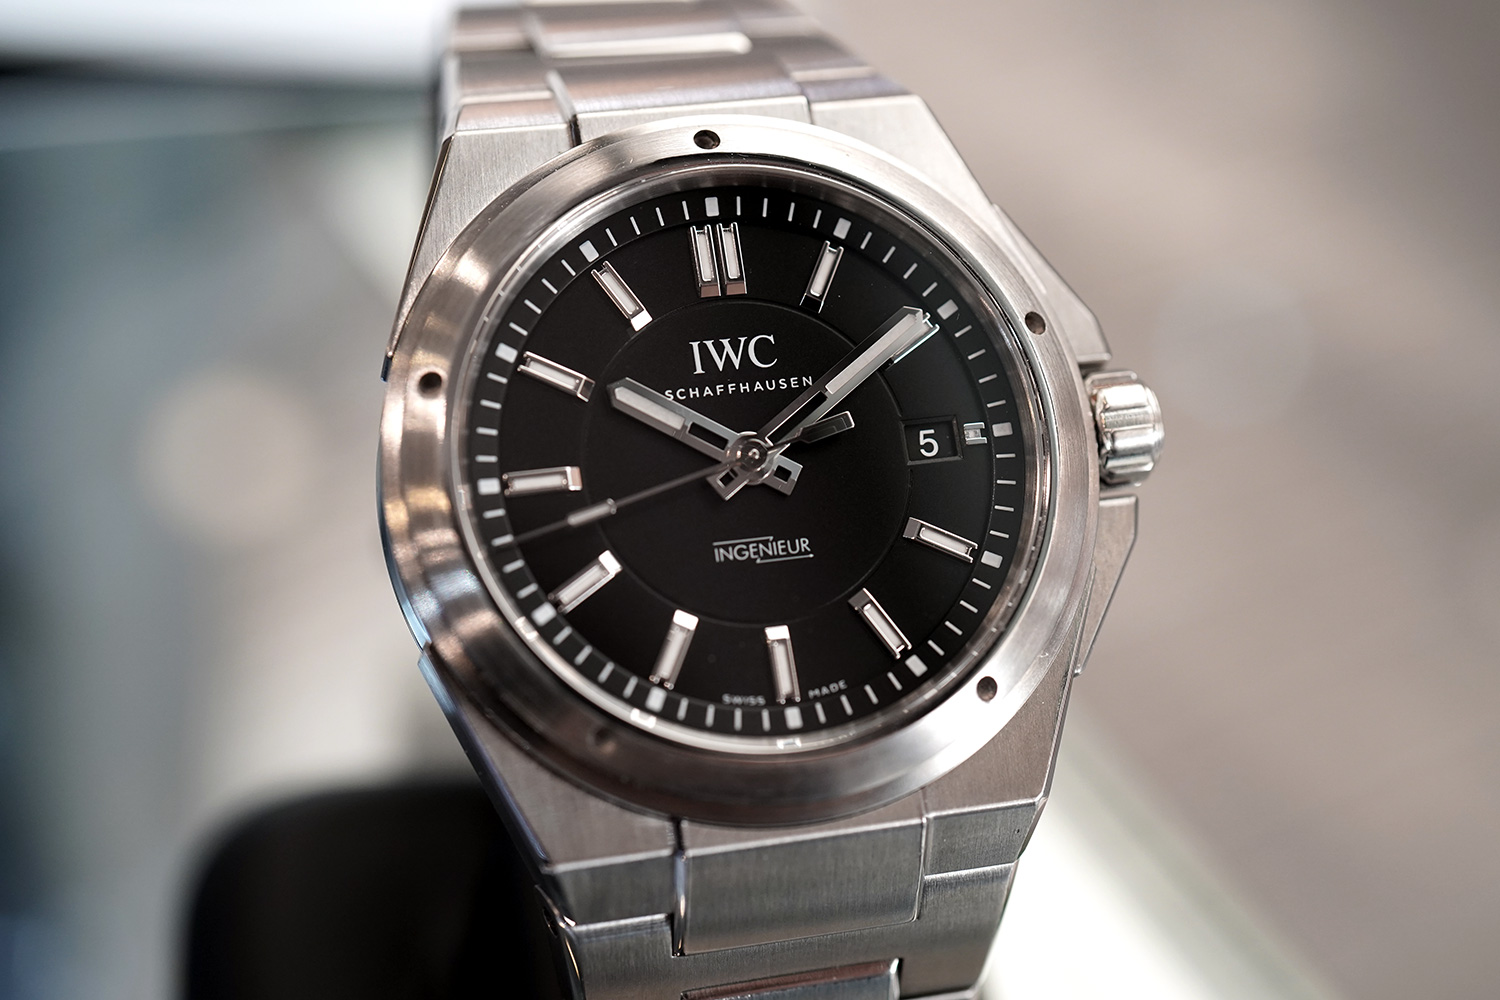 low priced d50da 21f35 IWC Ingenieur IW323902 Automatic Black Dial 40 mm Ref ...